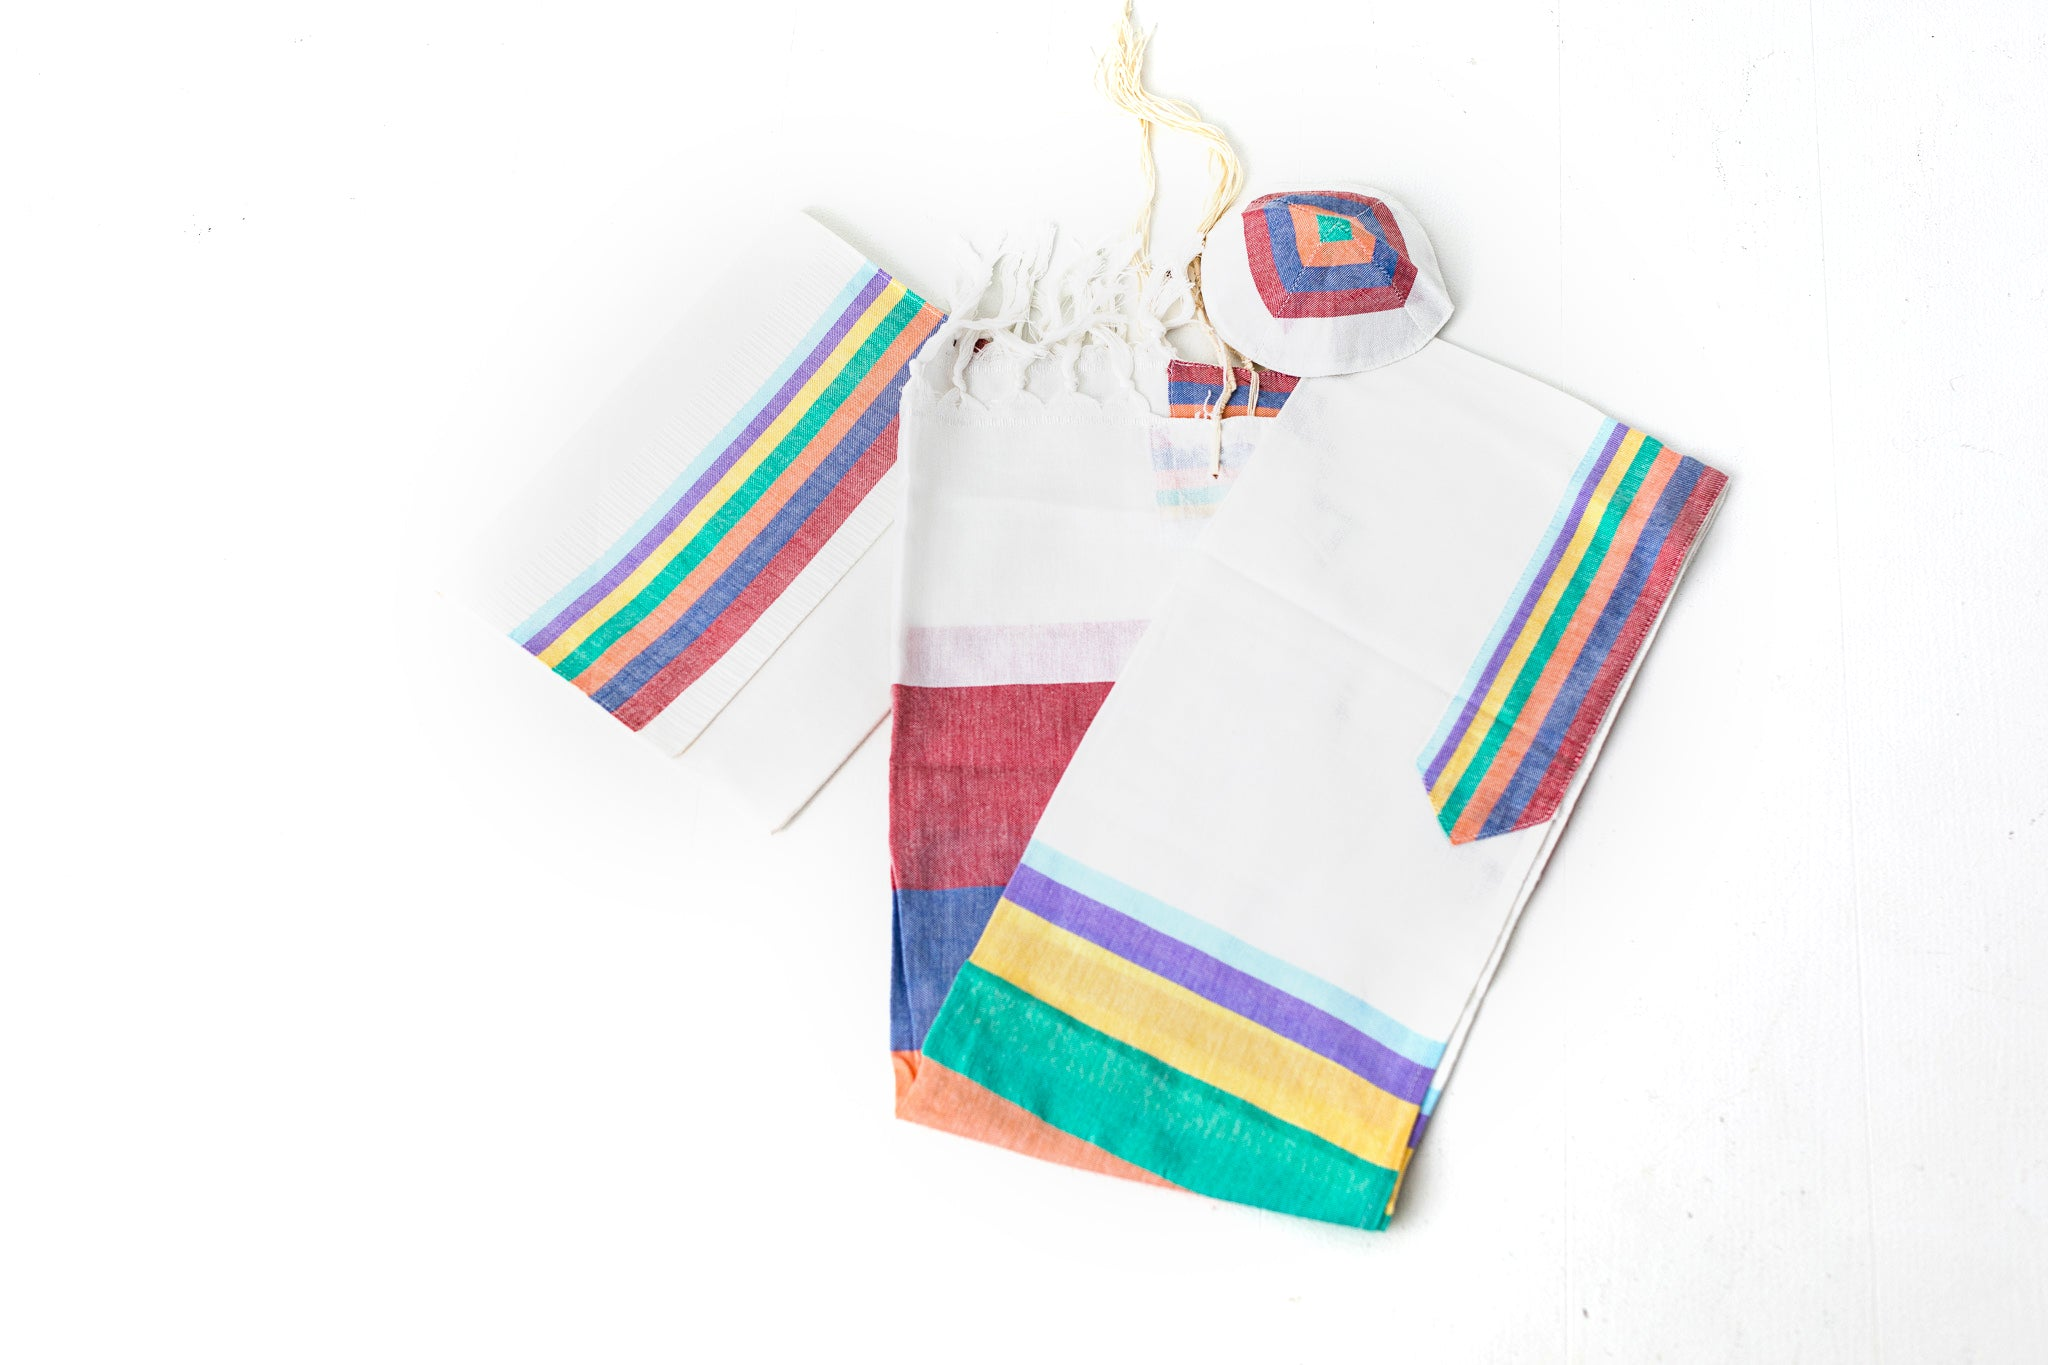 Tallit- White tallit set with multicolored denim stripes